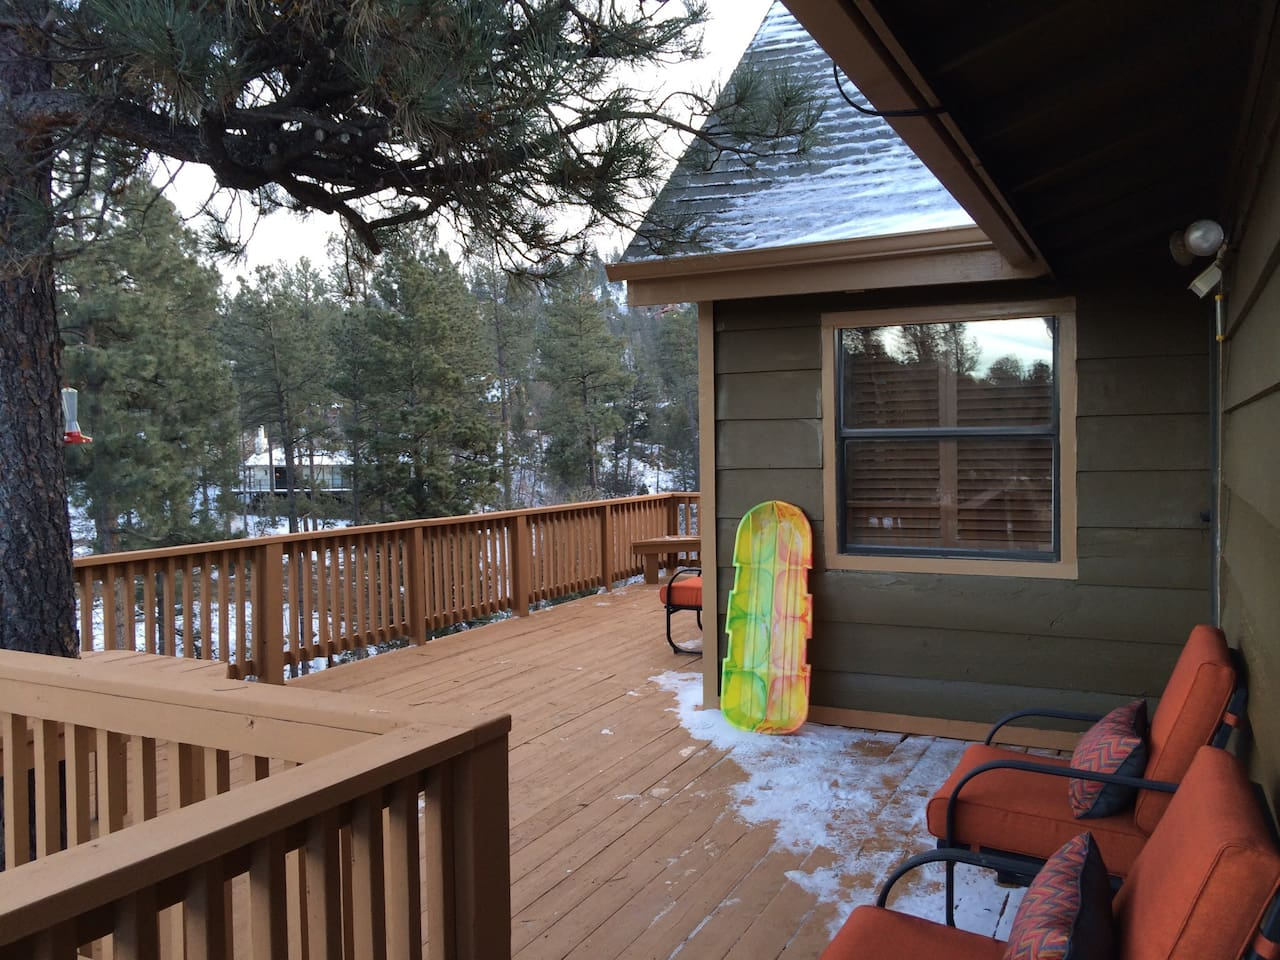 Lewis Lodge Ruidoso - Cabins for Rent in Ruidoso, New Mexico, United ...